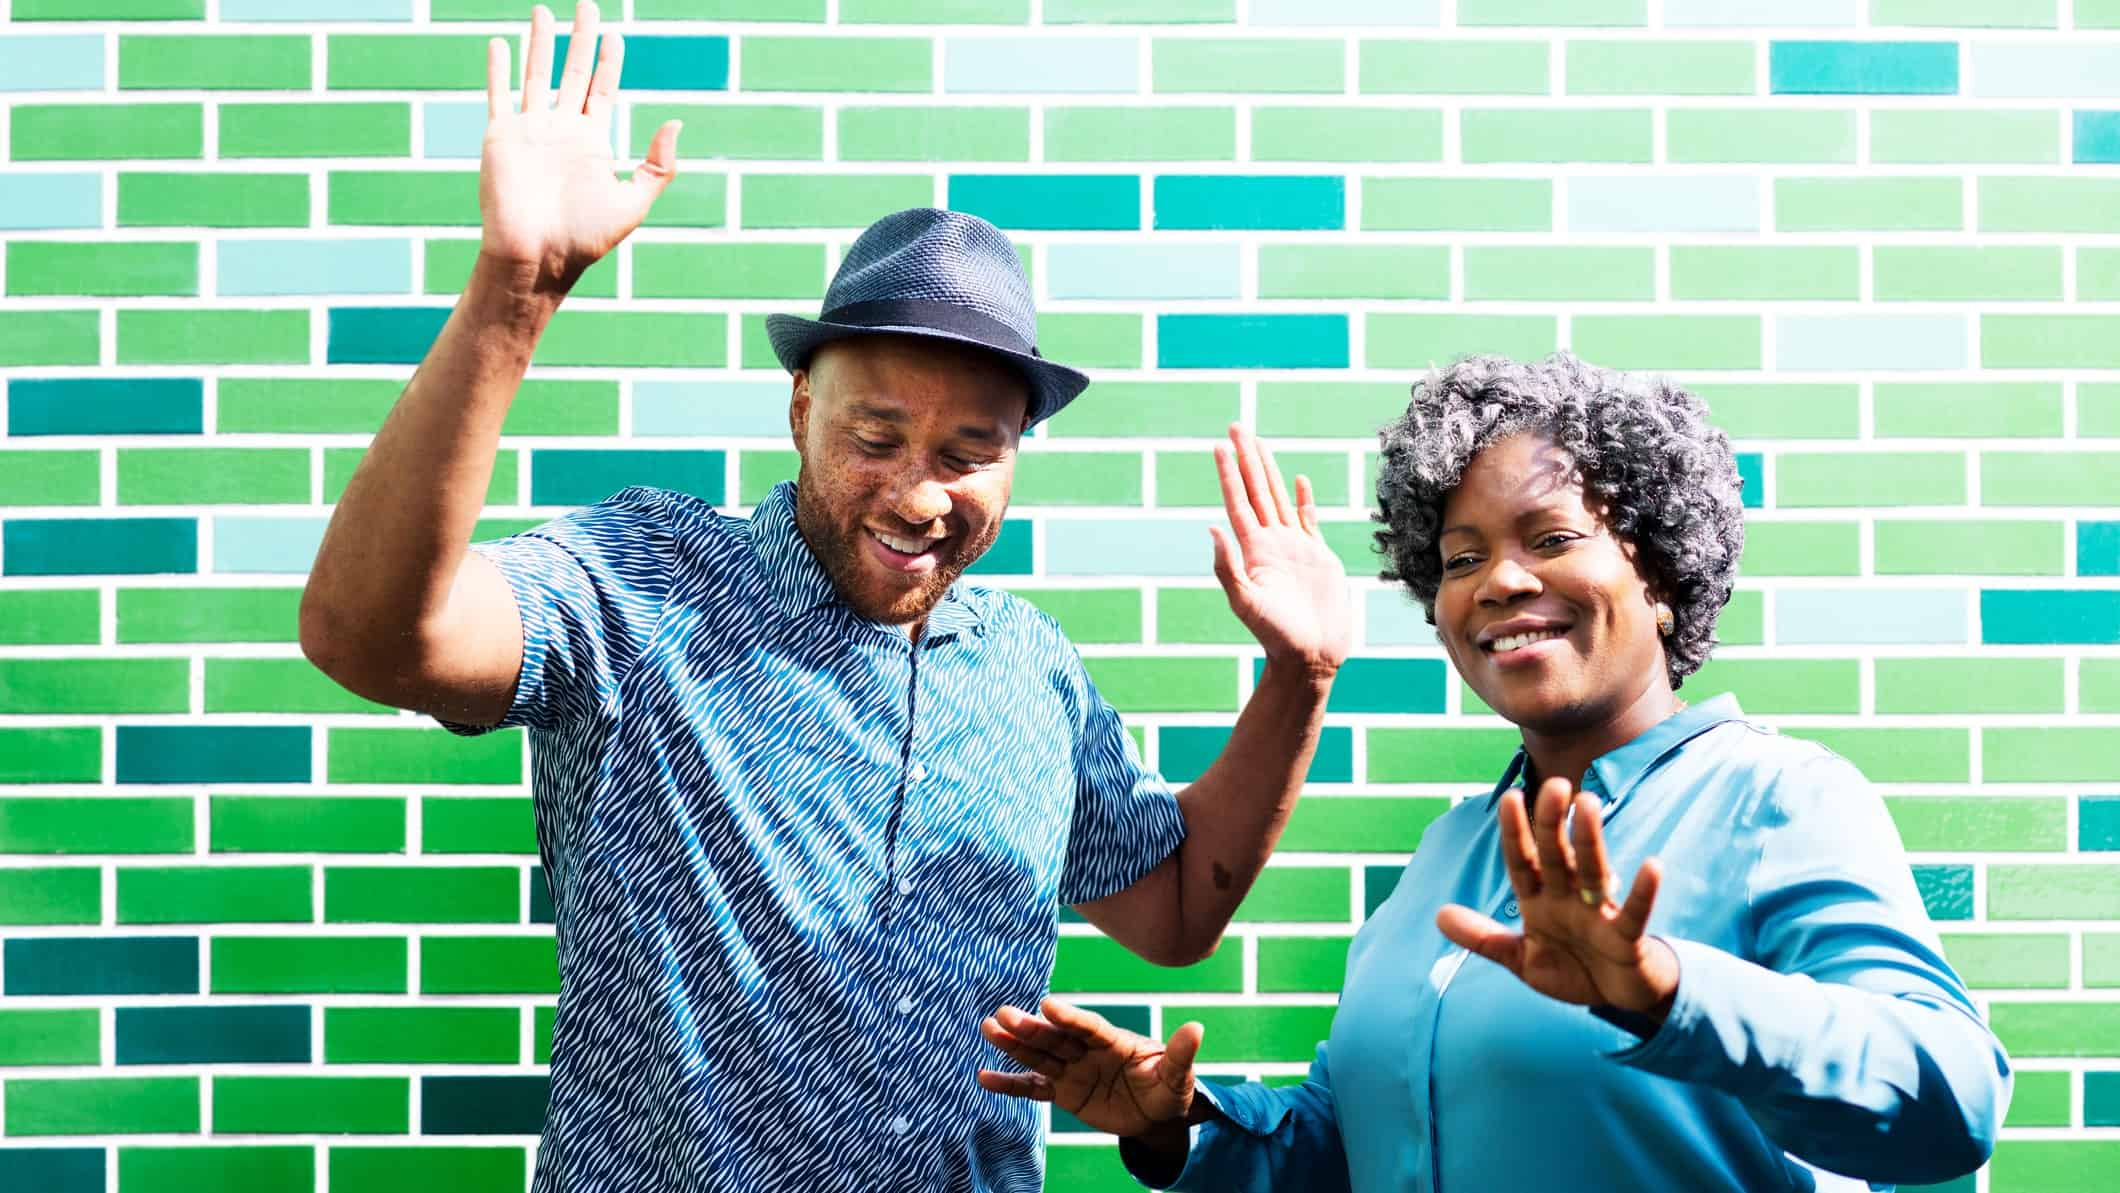 A man and woman put hands in the air as they dance in front of a green brick wall.